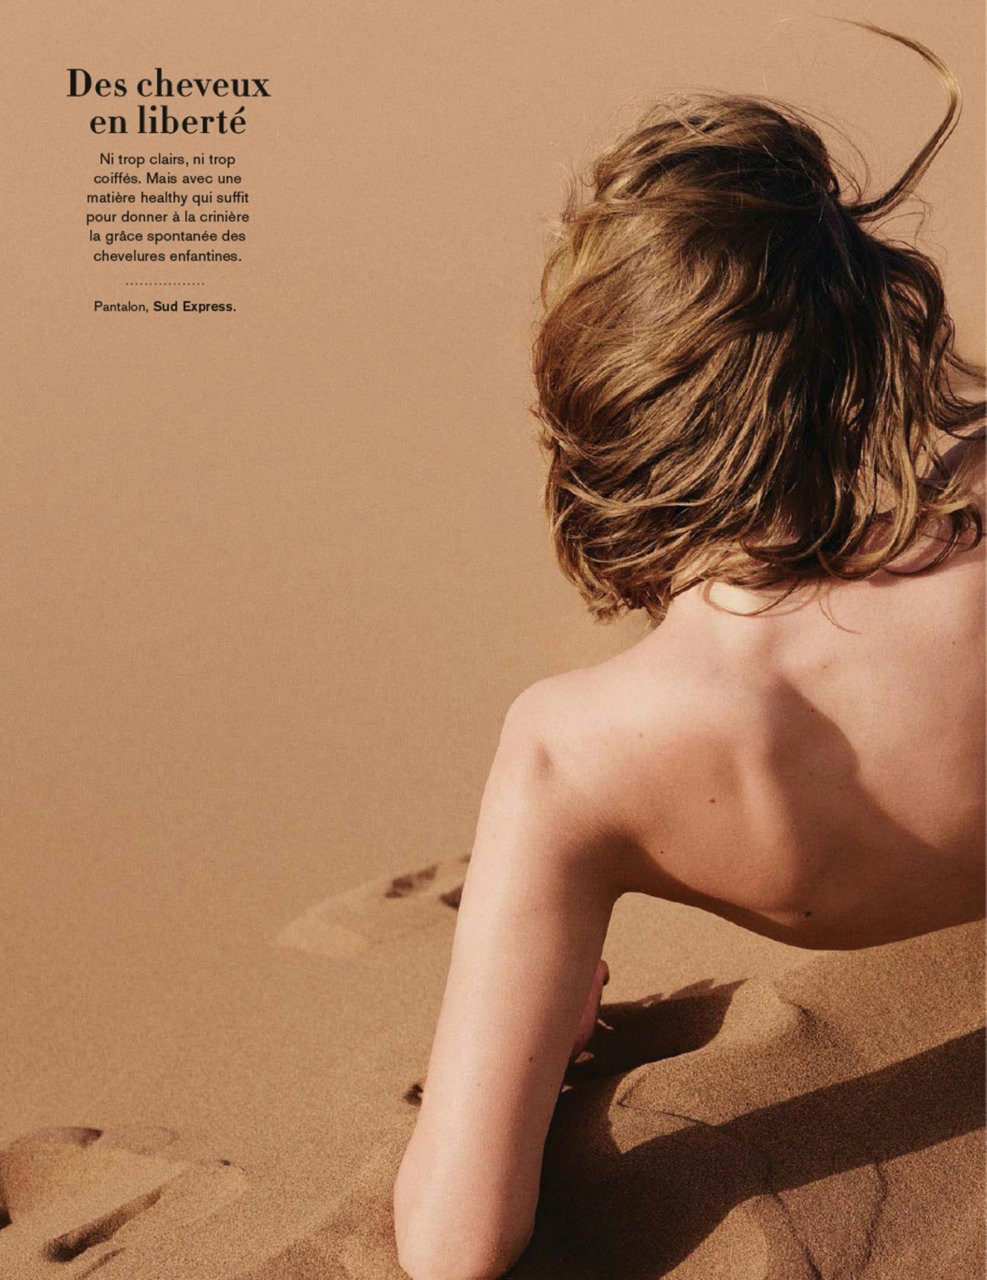 Frida Gustavsson Topless 21 TheFappening.nu